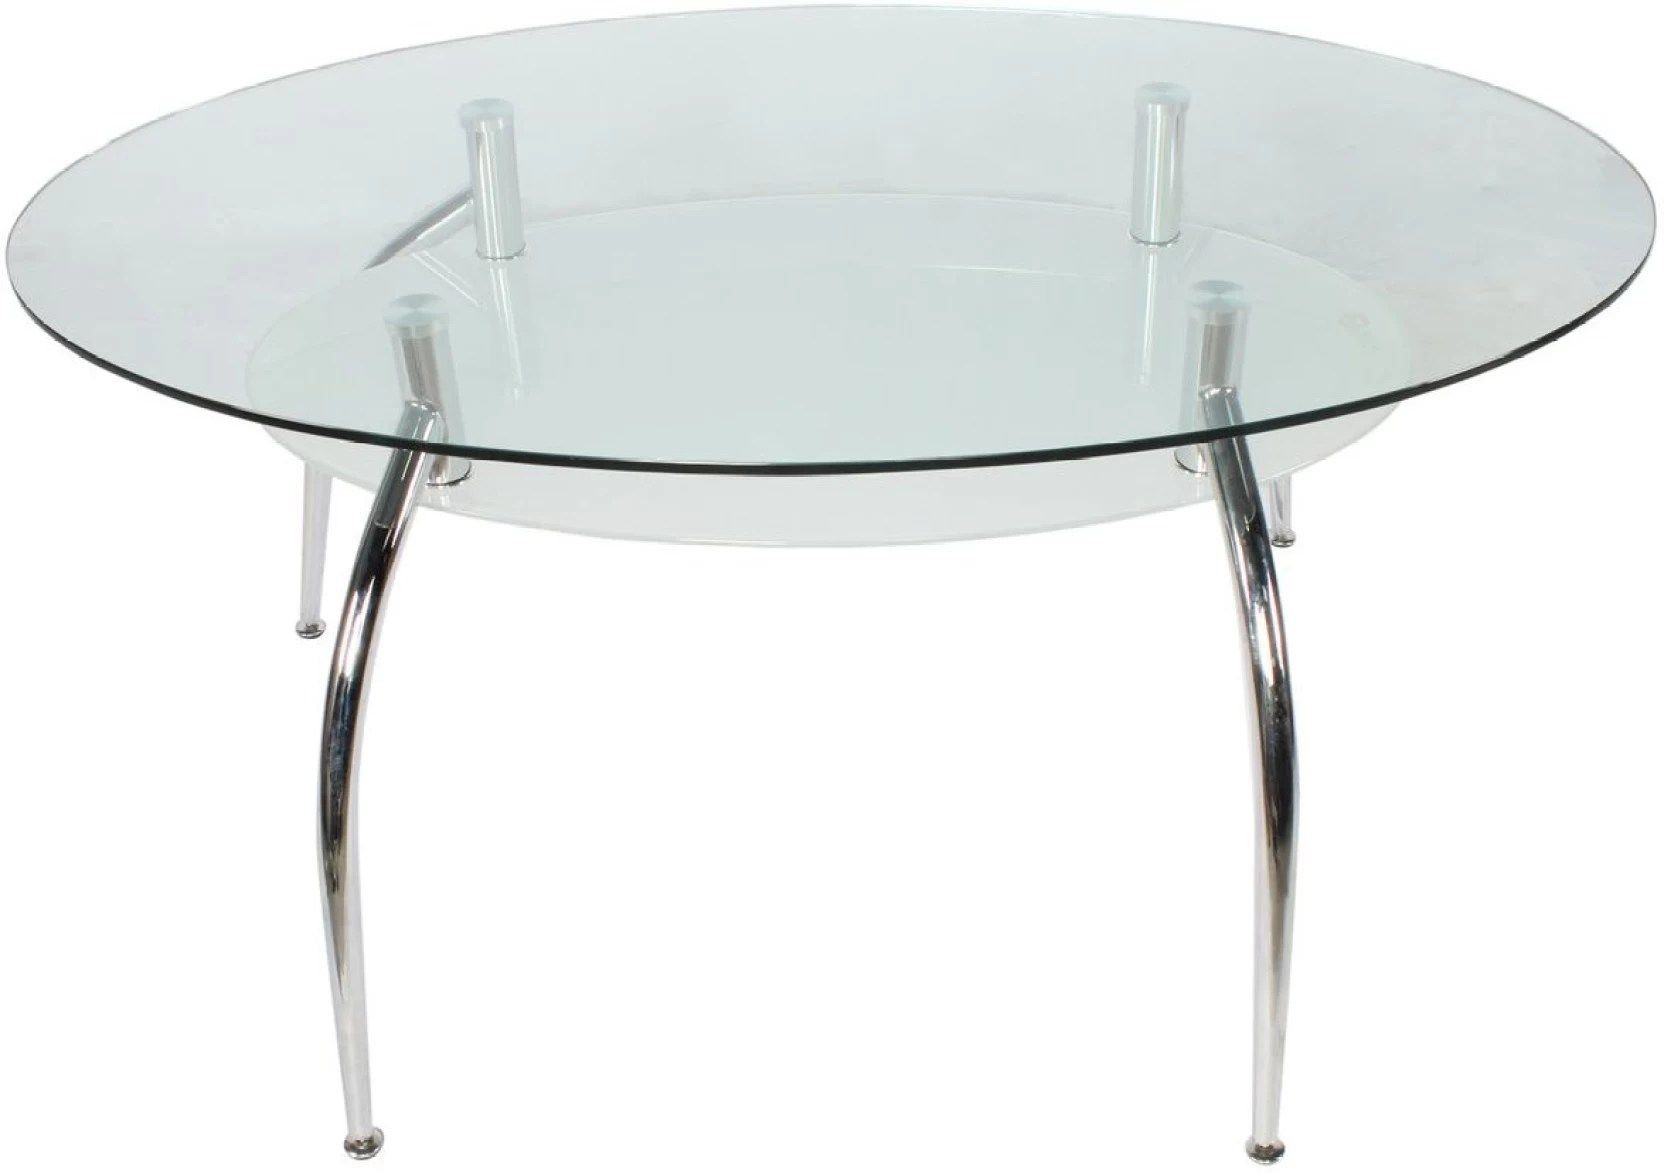 Bettsofa Interio Ch Godrej Interio Duston Glass 6 Seater Dining Table Price In India